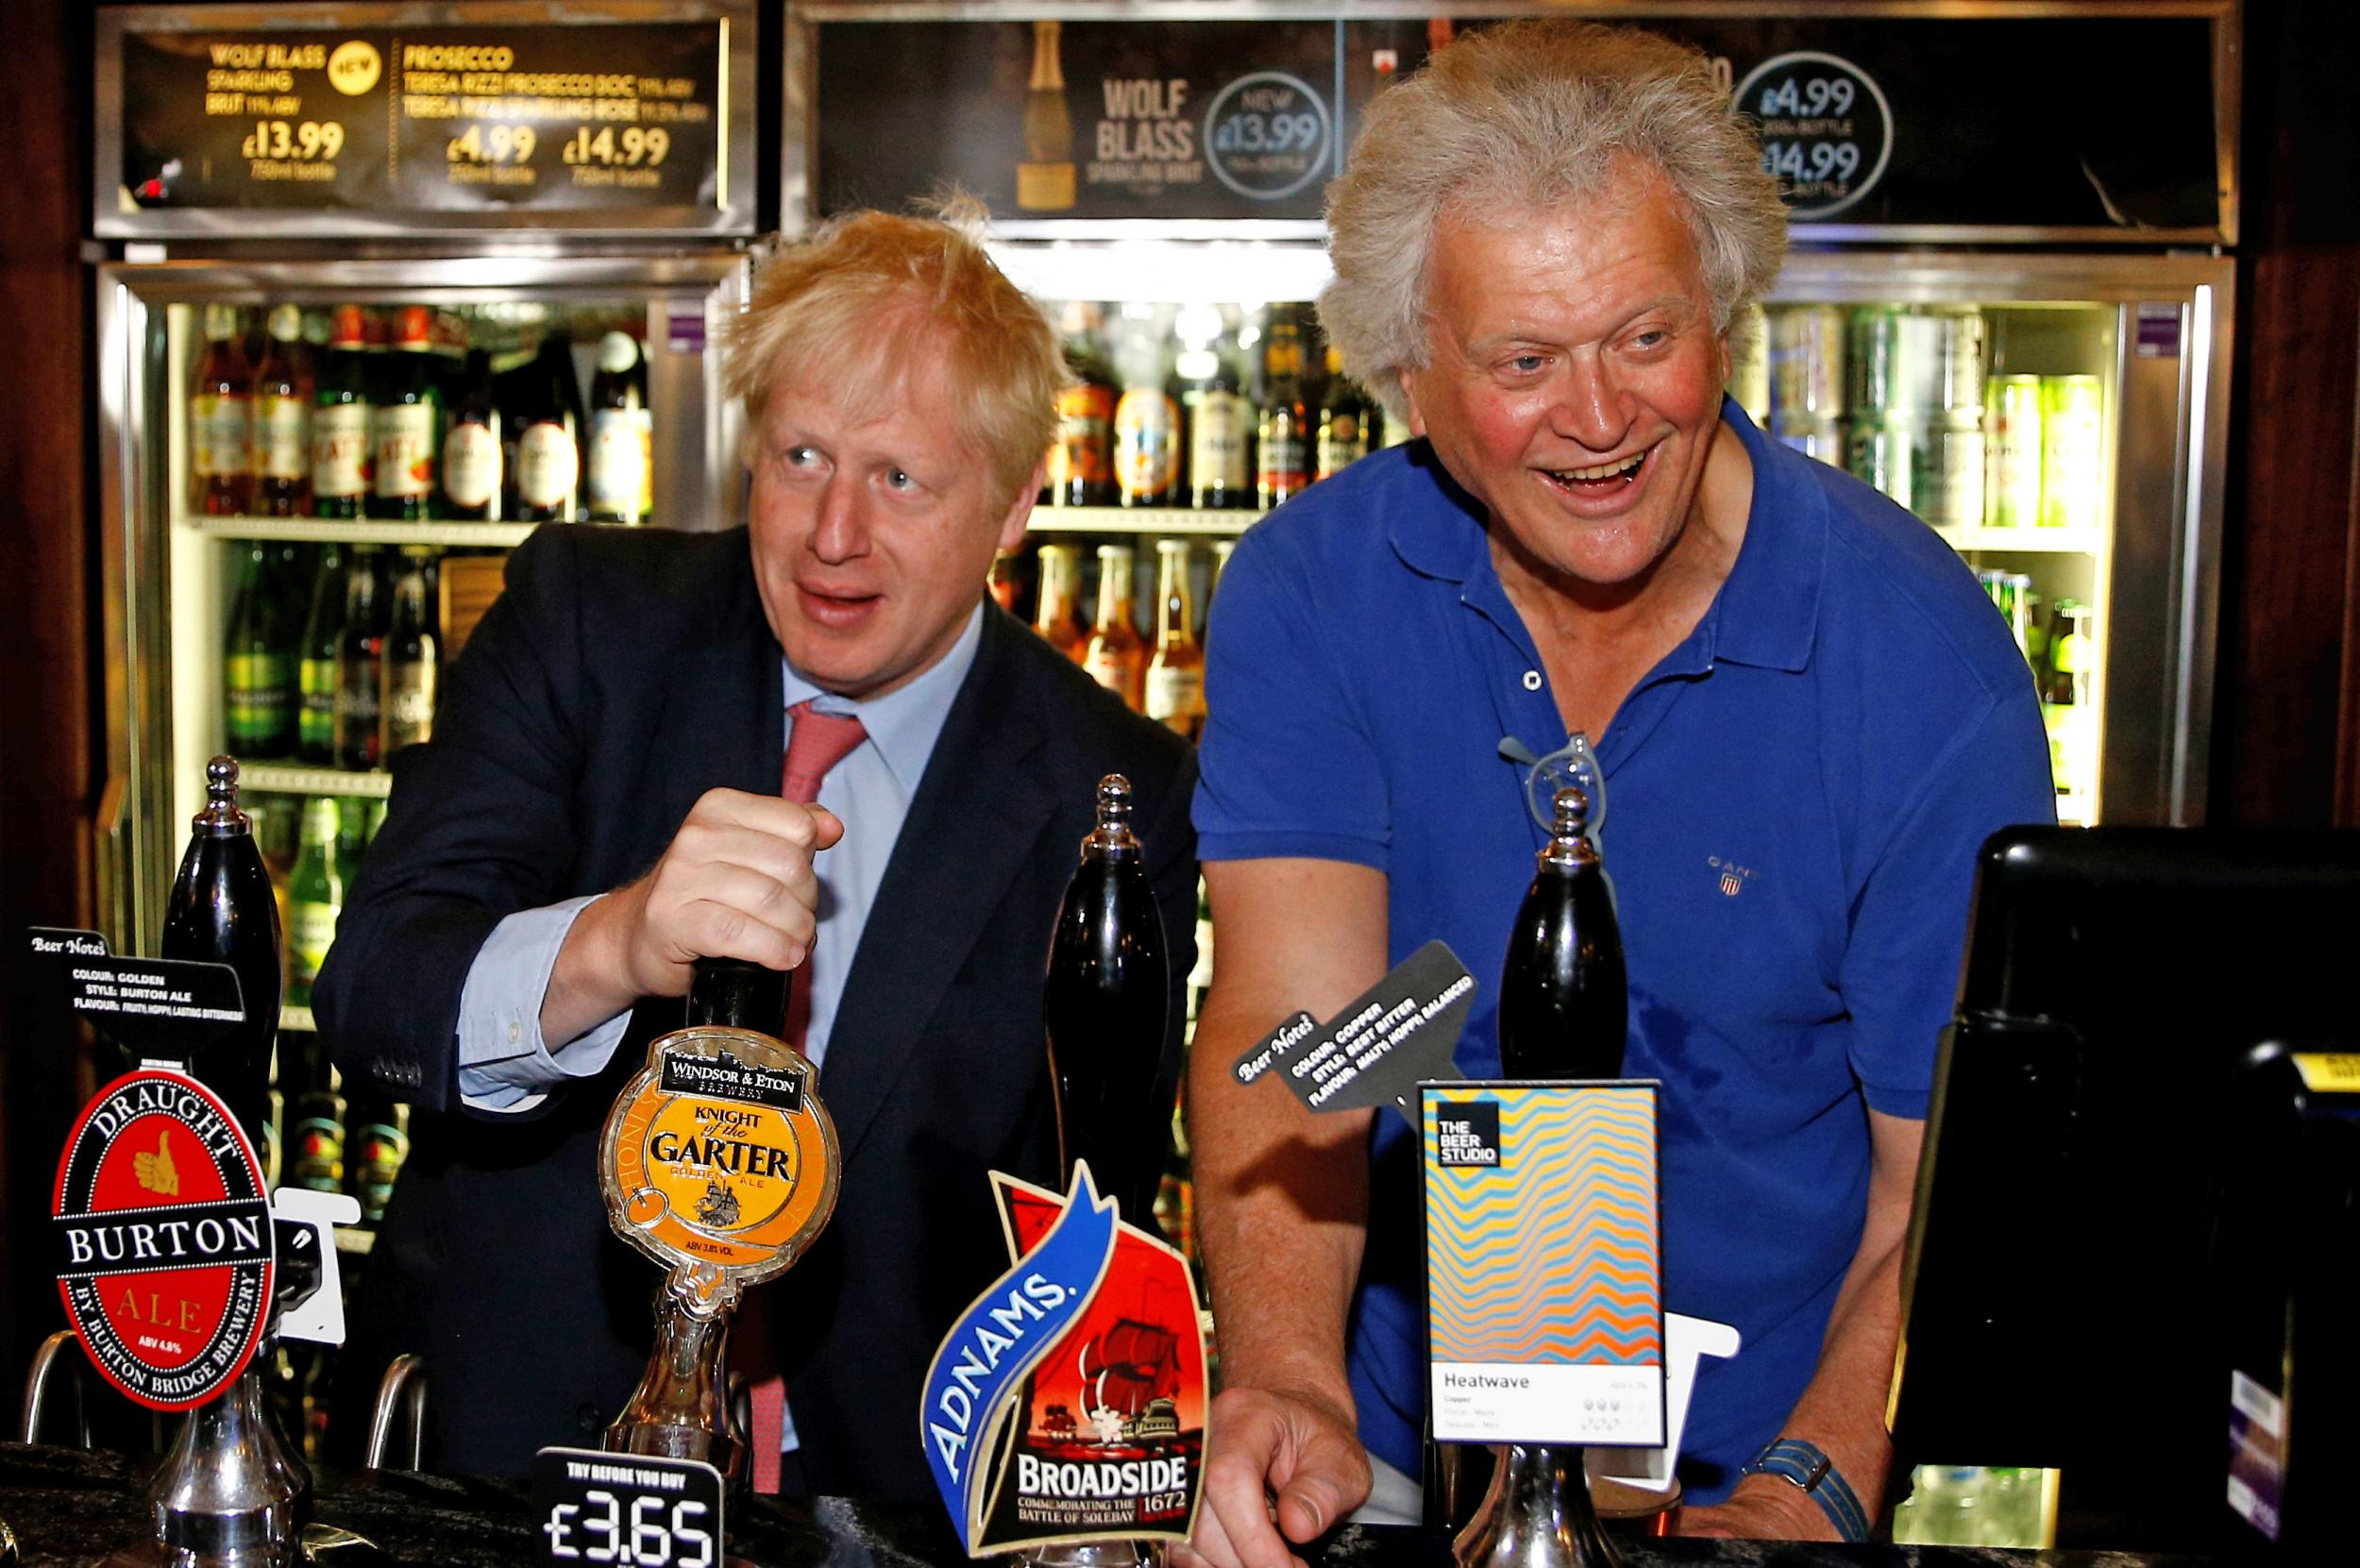 Wetherspoons boss hits back at 'Euro-communist' who criticised pub …